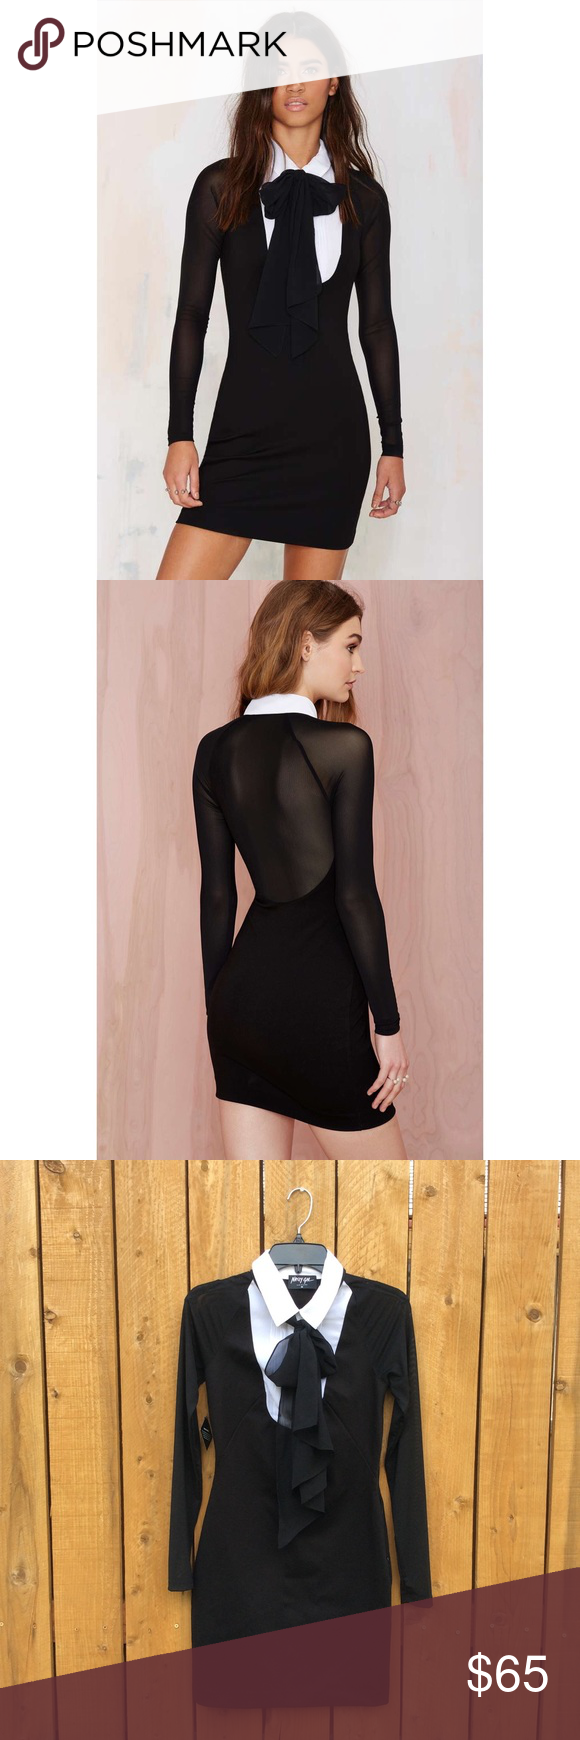 Nasty Gal Atone Collared Dress The black bodycon dress has white collar detailing with a snap bow at the neck, sheer sleeves and back, and a zip closure at the side. Sold out. Size medium but fits slightly tight in the chest. Nasty Gal Dresses Long Sleeve